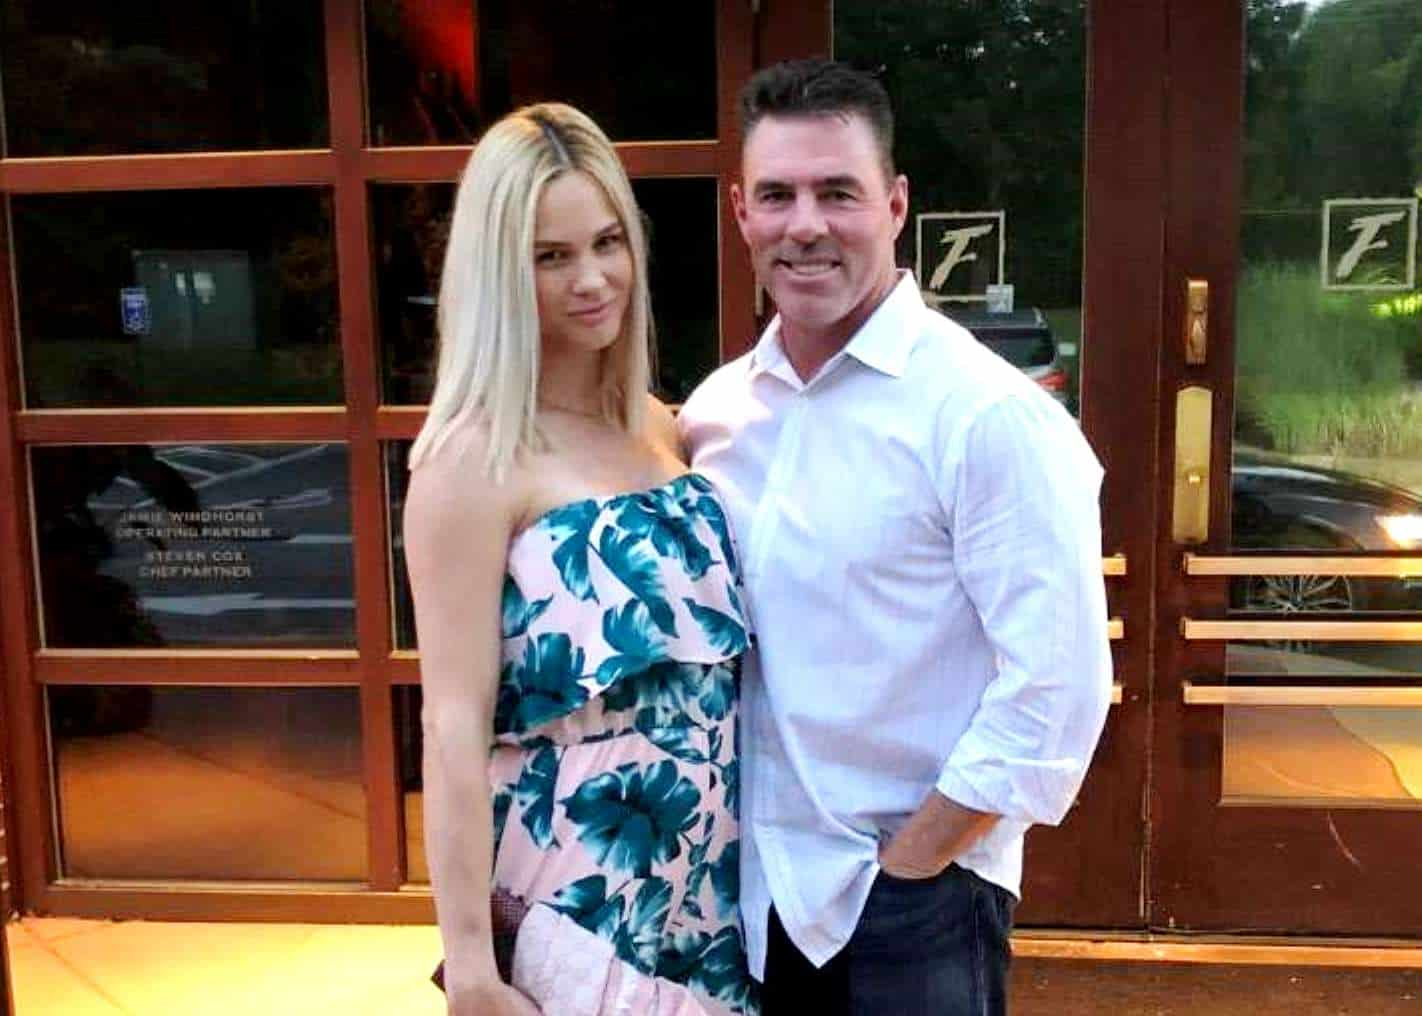 PHOTOS: RHOC's Jim Edmonds Reunites Kids After Meghan King Edmonds Shades His Parenting, Plus is He Moving Into His New Home Without Meghan?